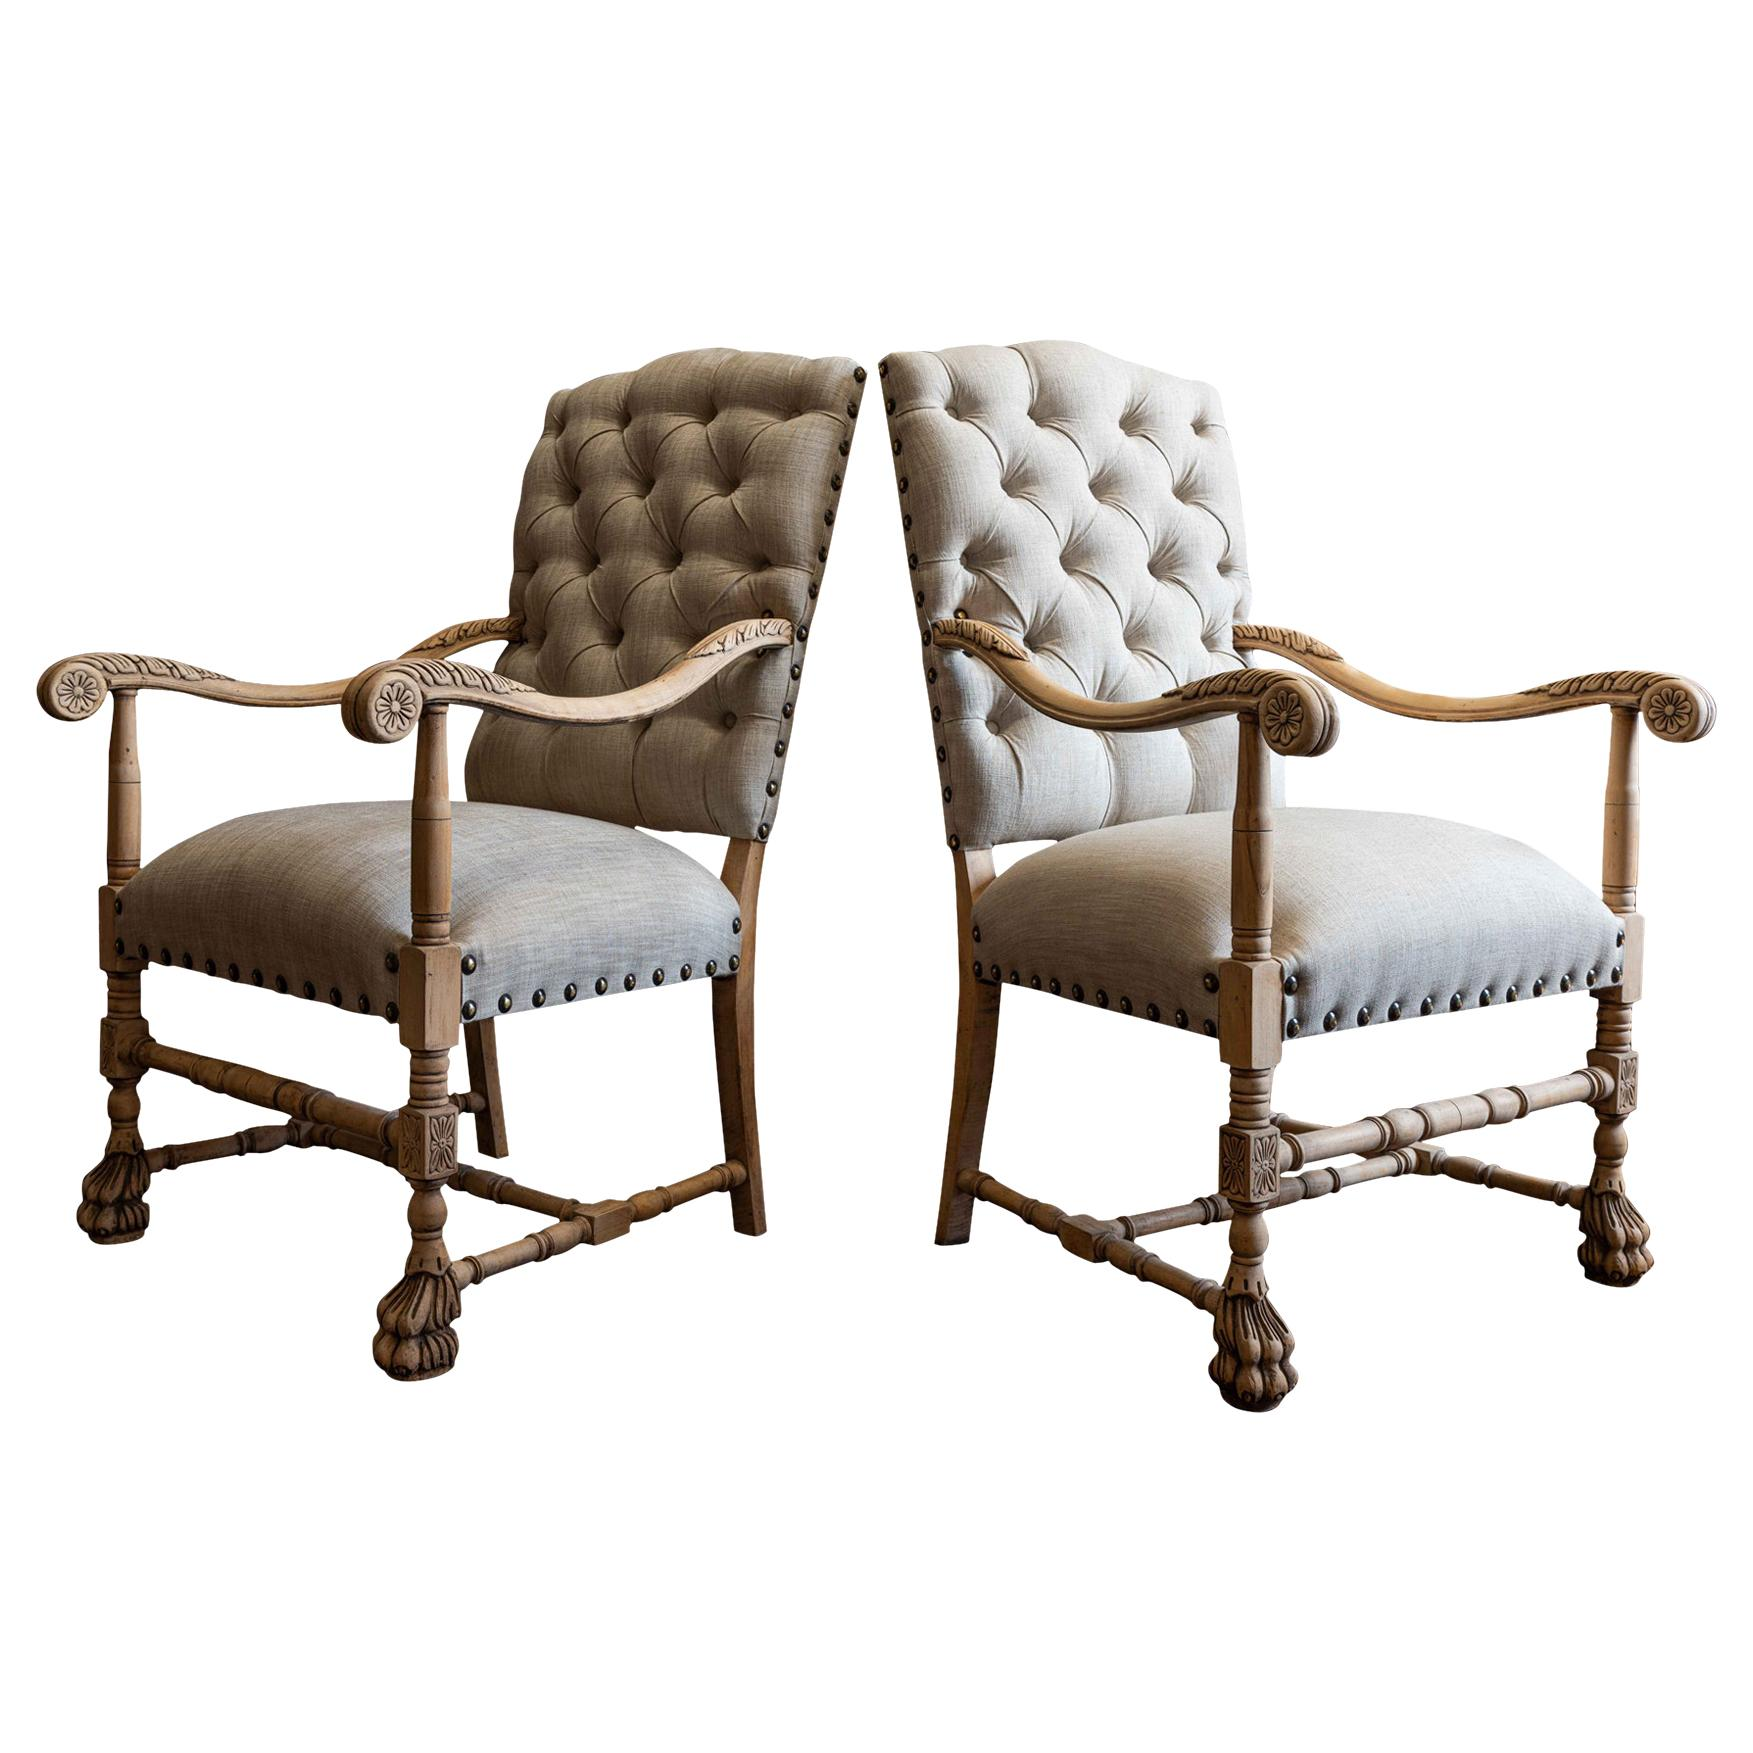 Pair of 19th Century French Library Armchairs Reupholstered in Linen